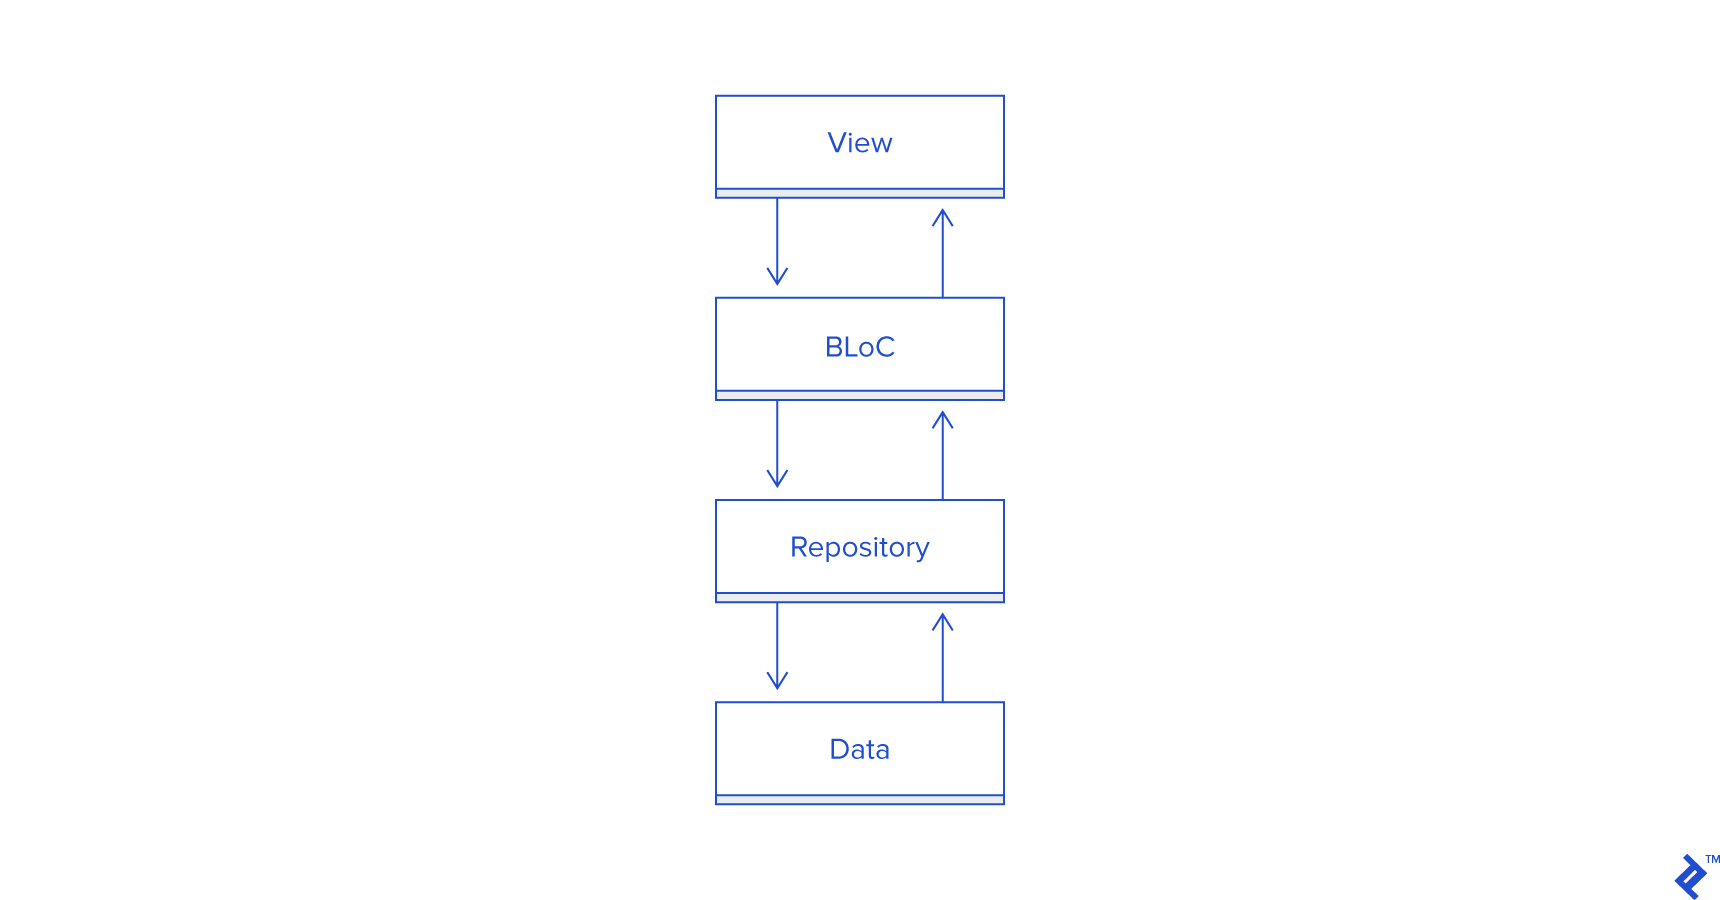 Diagram of the communications flow in the view, BLoC, repository, and data layers